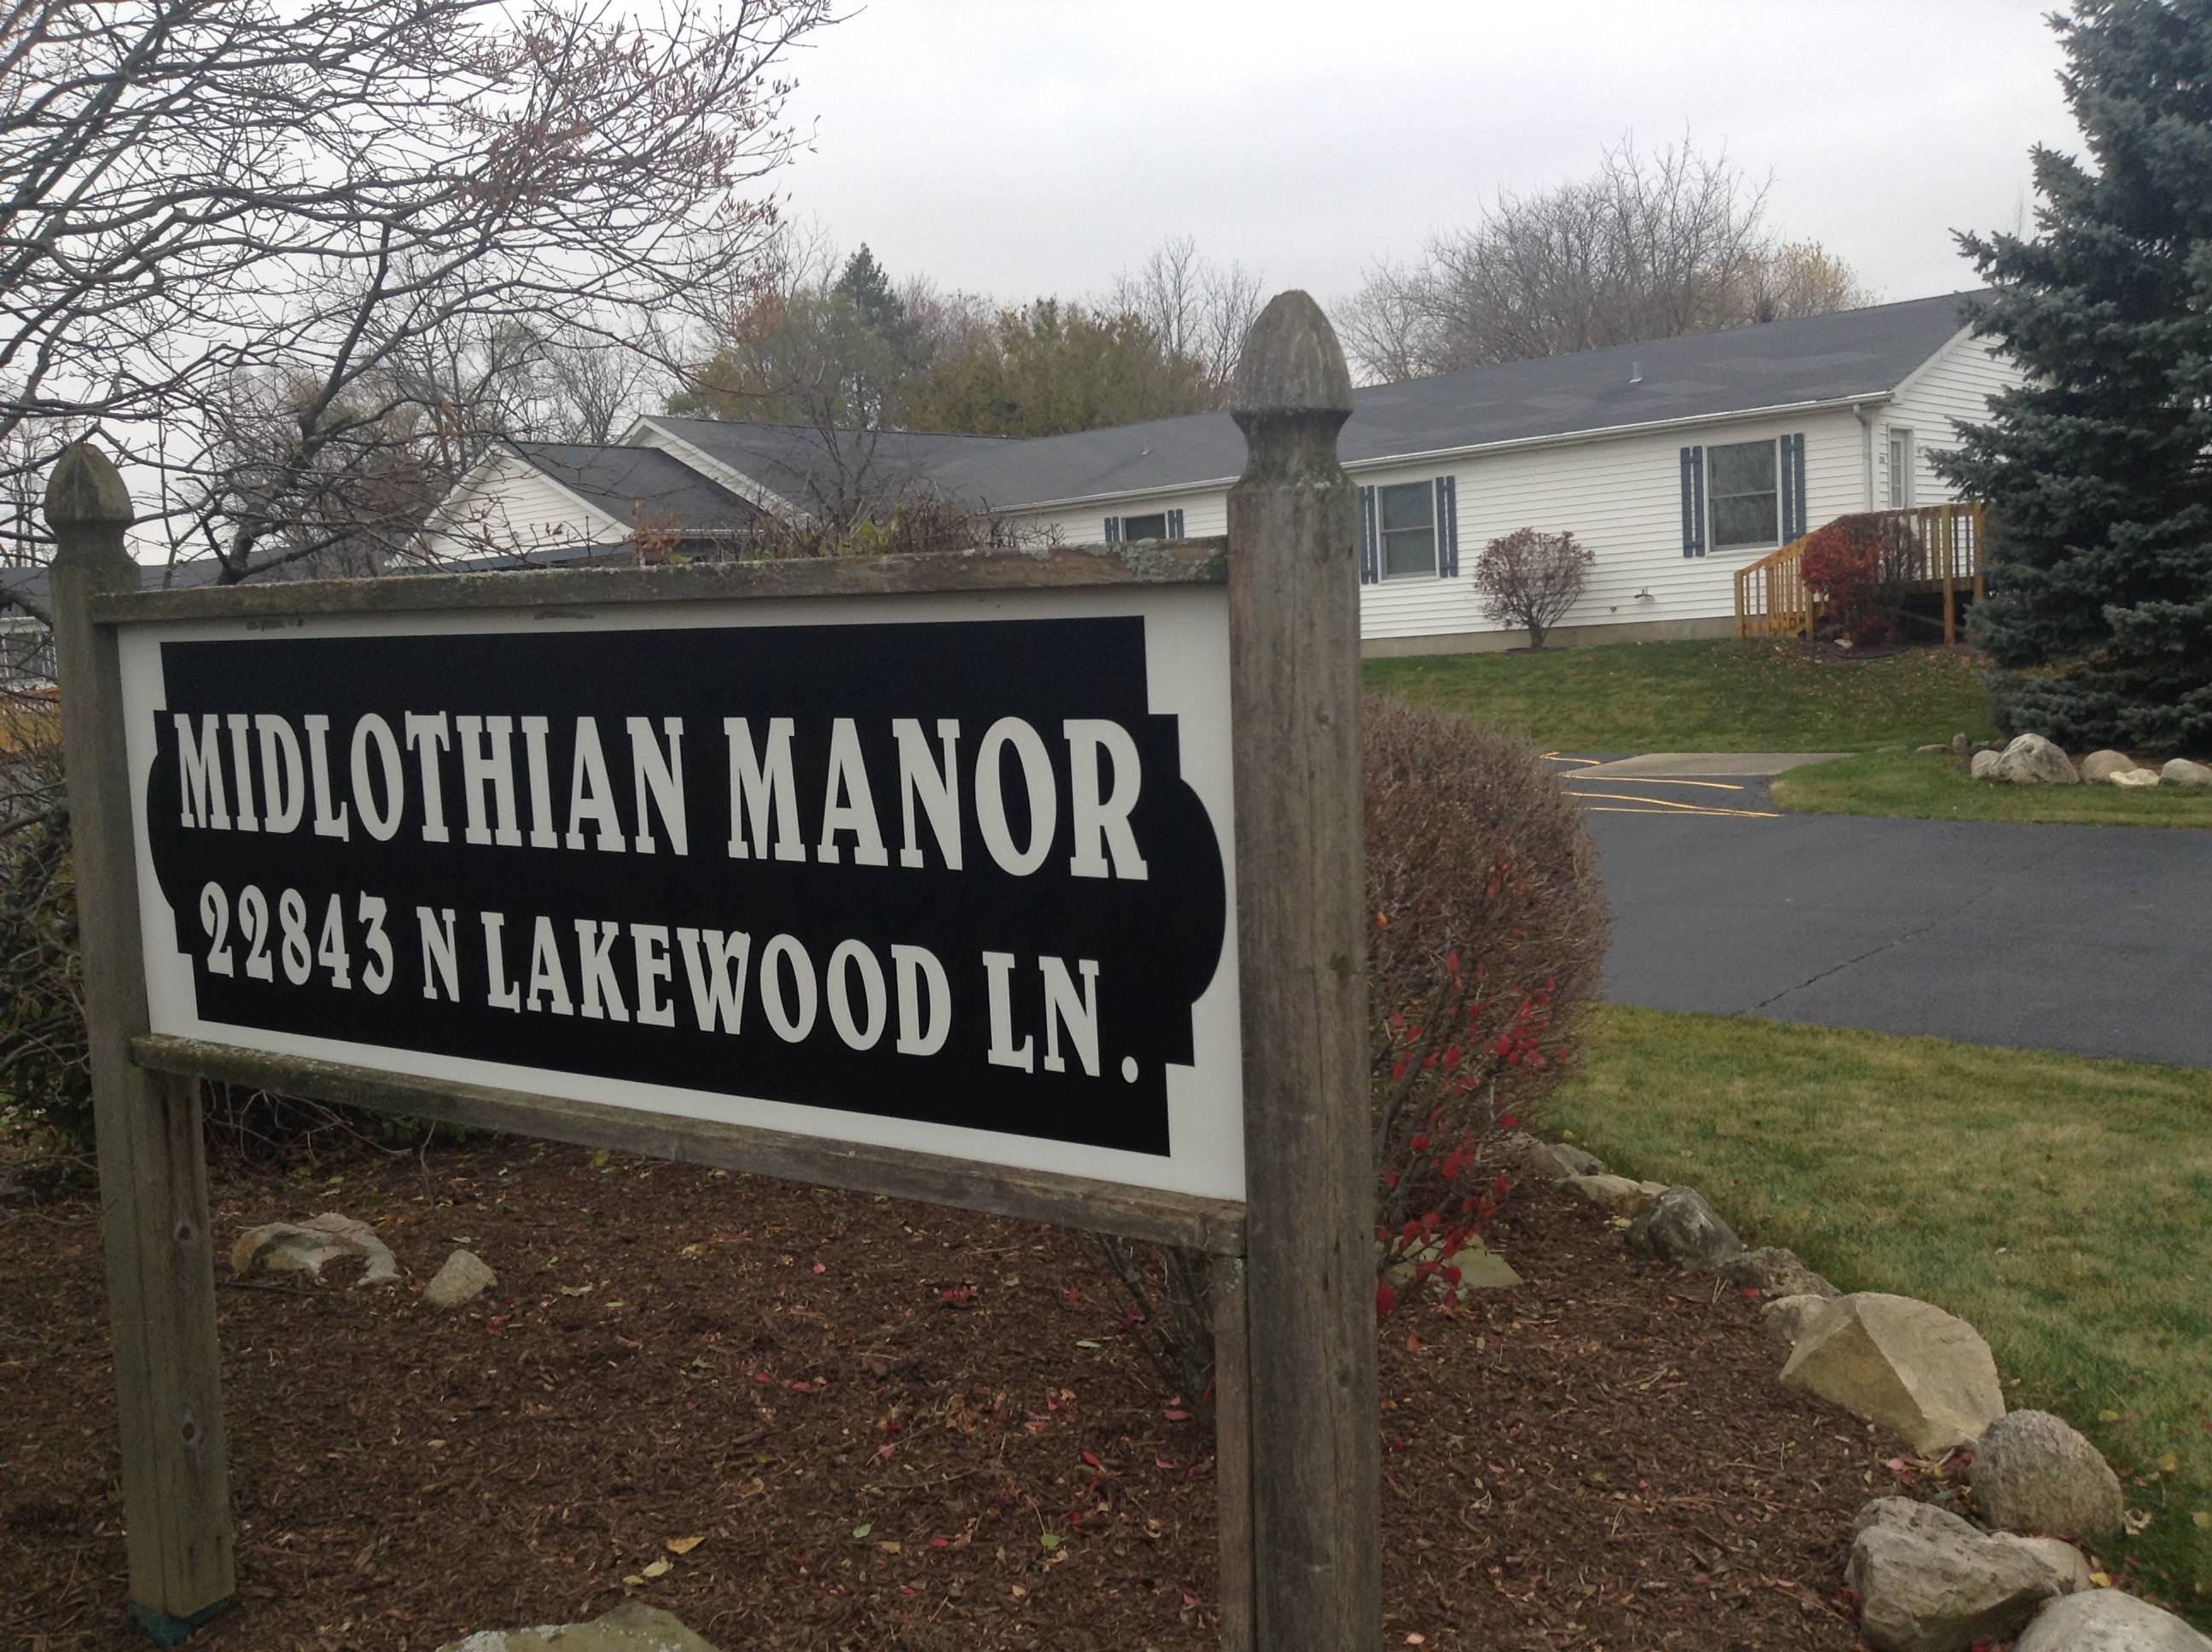 At least 13 Lake Zurich-area residents are continuing their fight against a proposal that would allow chronically homeless people with mental illness to live in this publicly owned building in their neighborhood. Midlothian Manor is at Midlothian Road and Lakeview Lane in Ela Township, on Lake Zurich's northern edge.